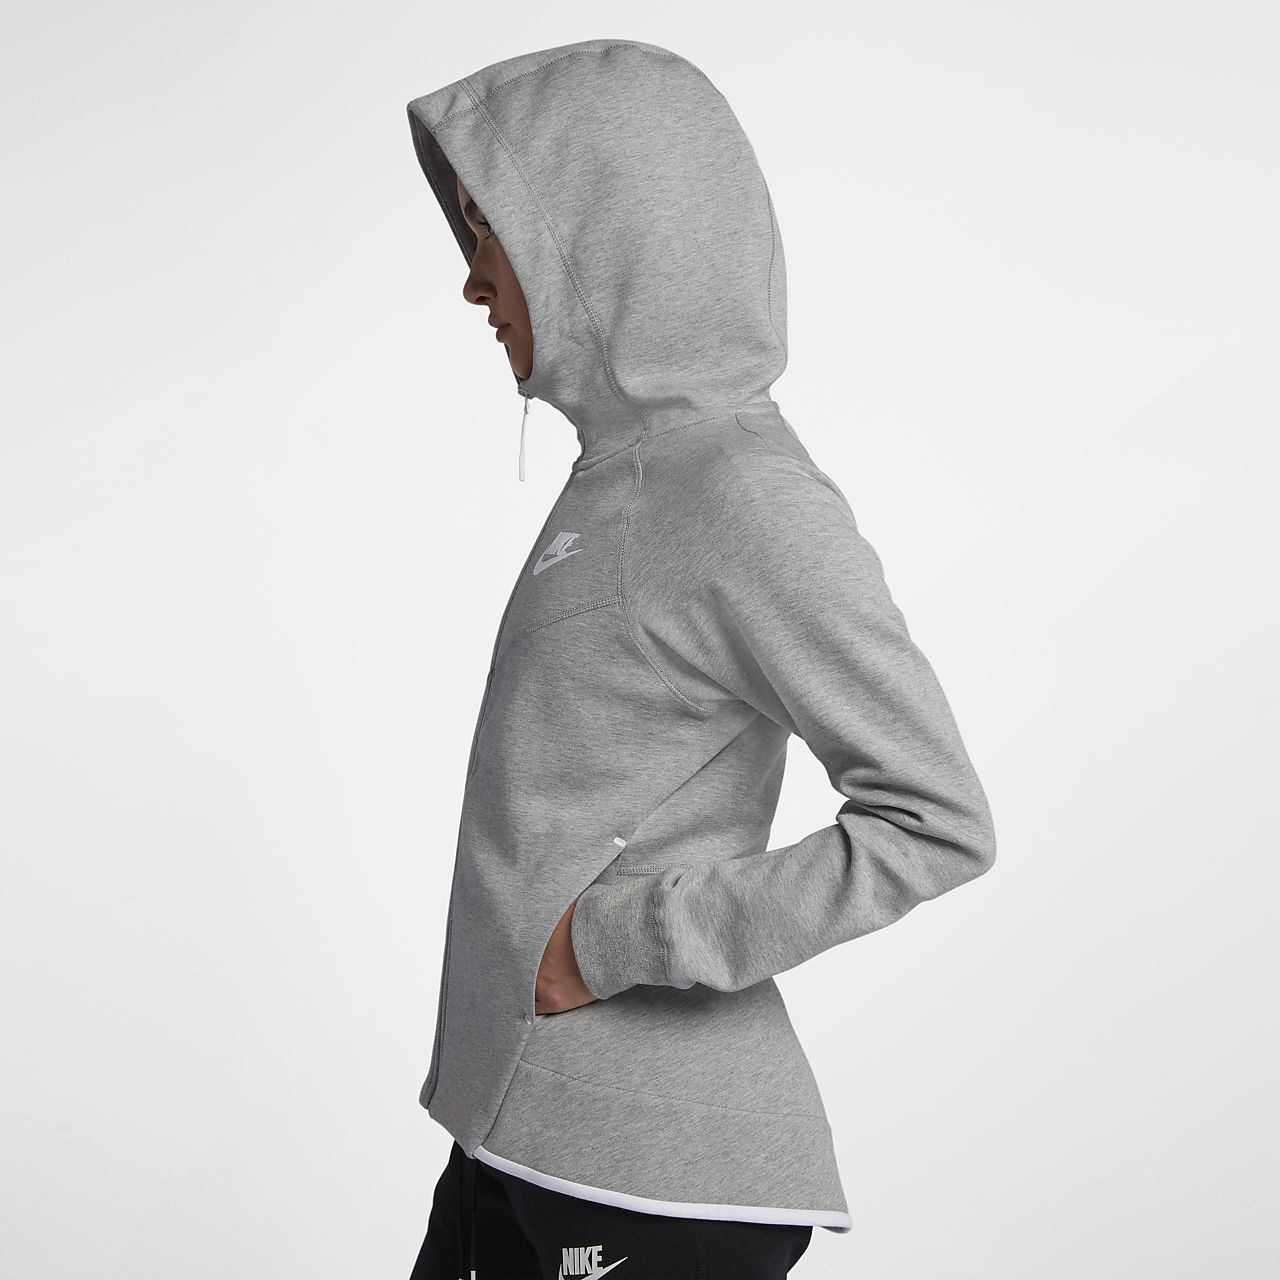 c75991d4a08a Nike Sportswear Tech Fleece Windrunner Women s Full-Zip Hoodie. Nike ...